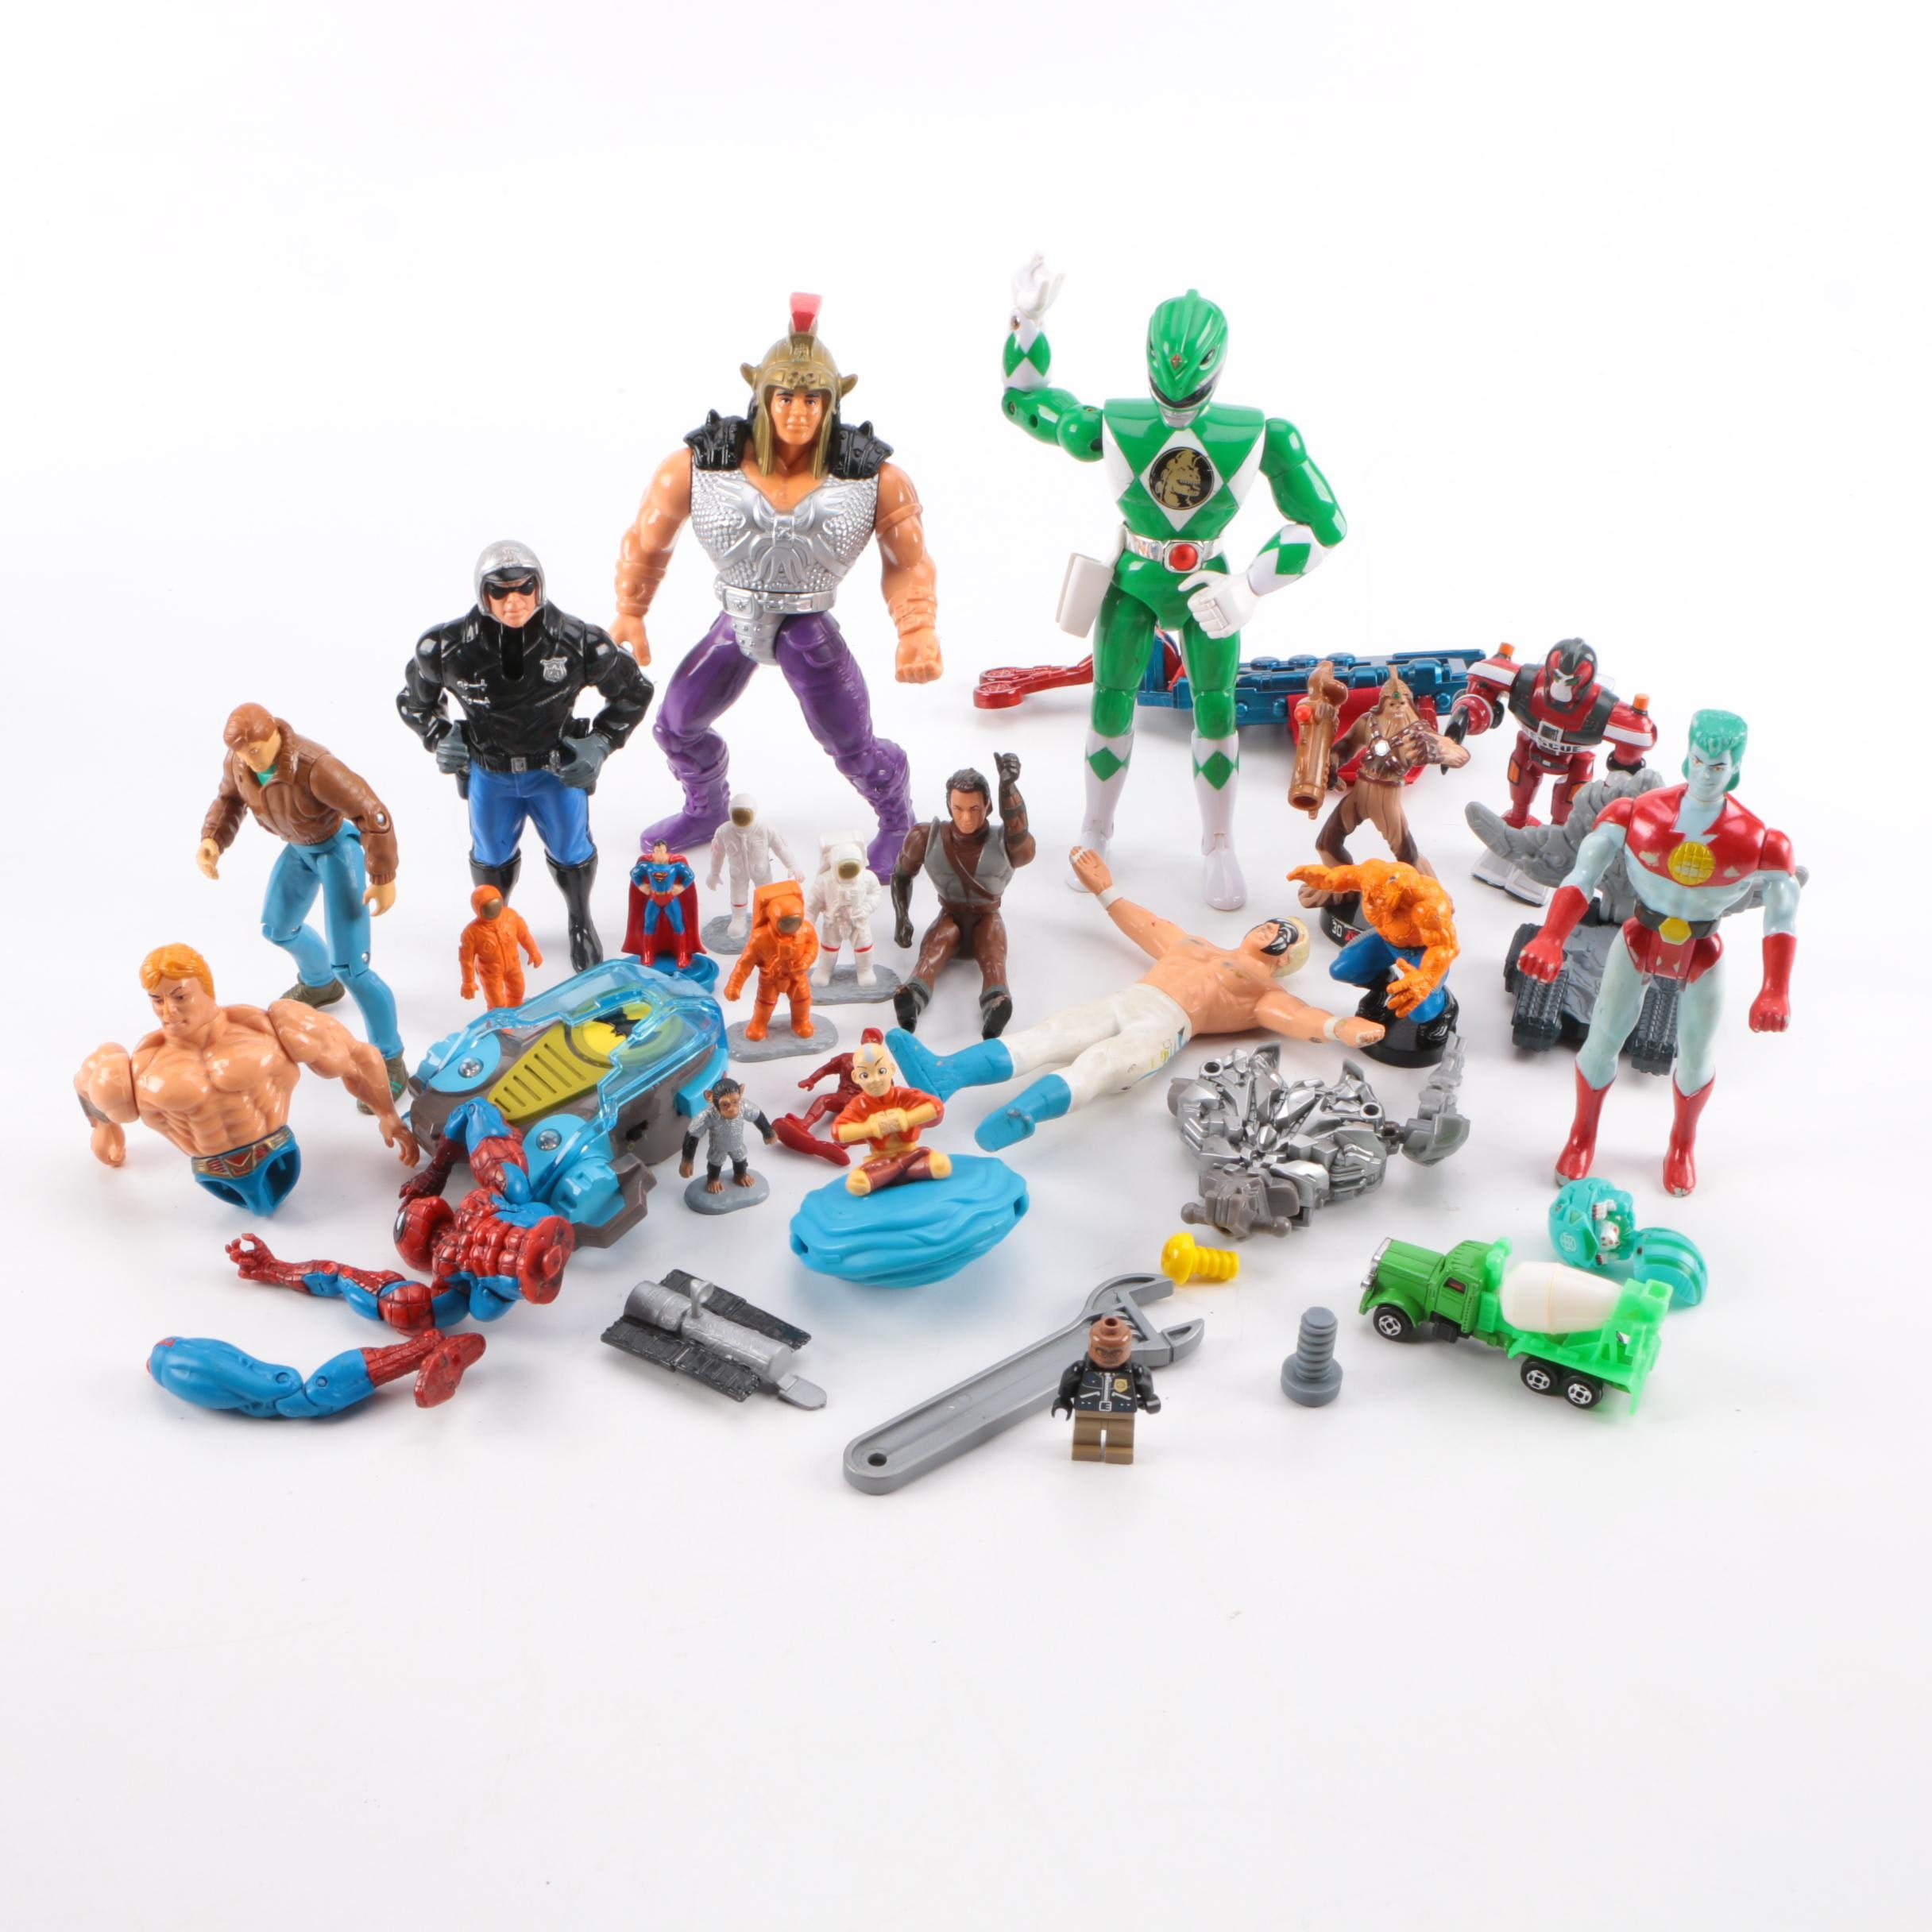 Large Assortment of Action Figures and Other Toys